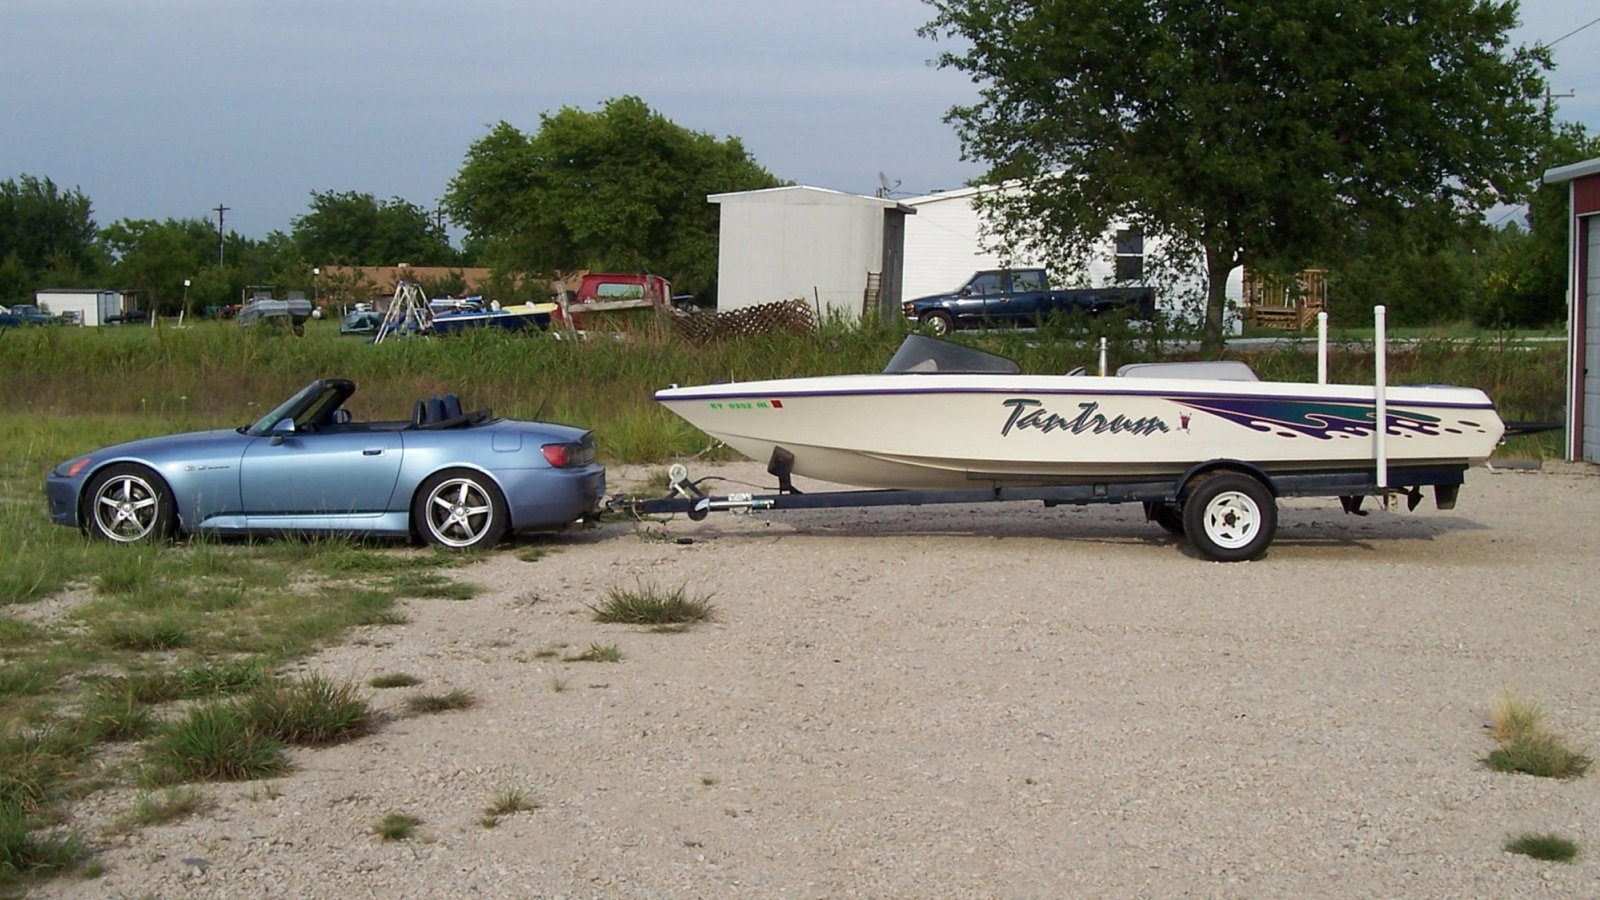 S2k Towing A Boat